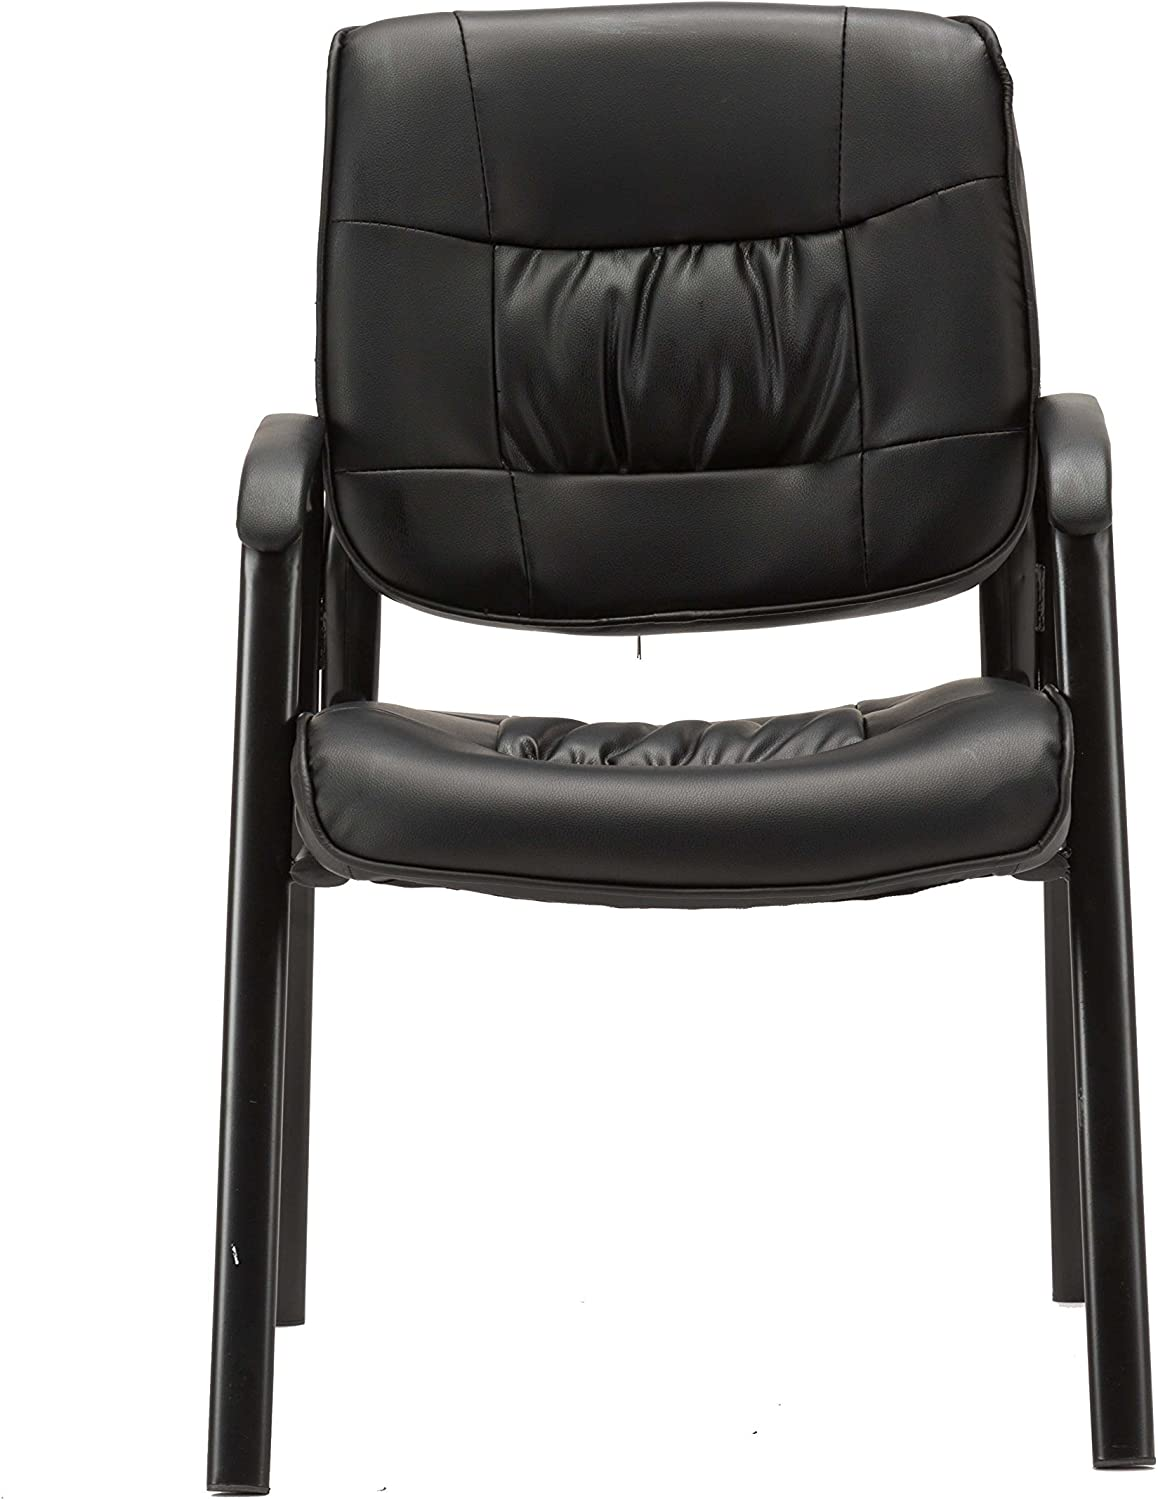 BTExpert Sleek Premium Leather Office Executive Waiting Room Guest/Reception Side Conference Chair, Black,